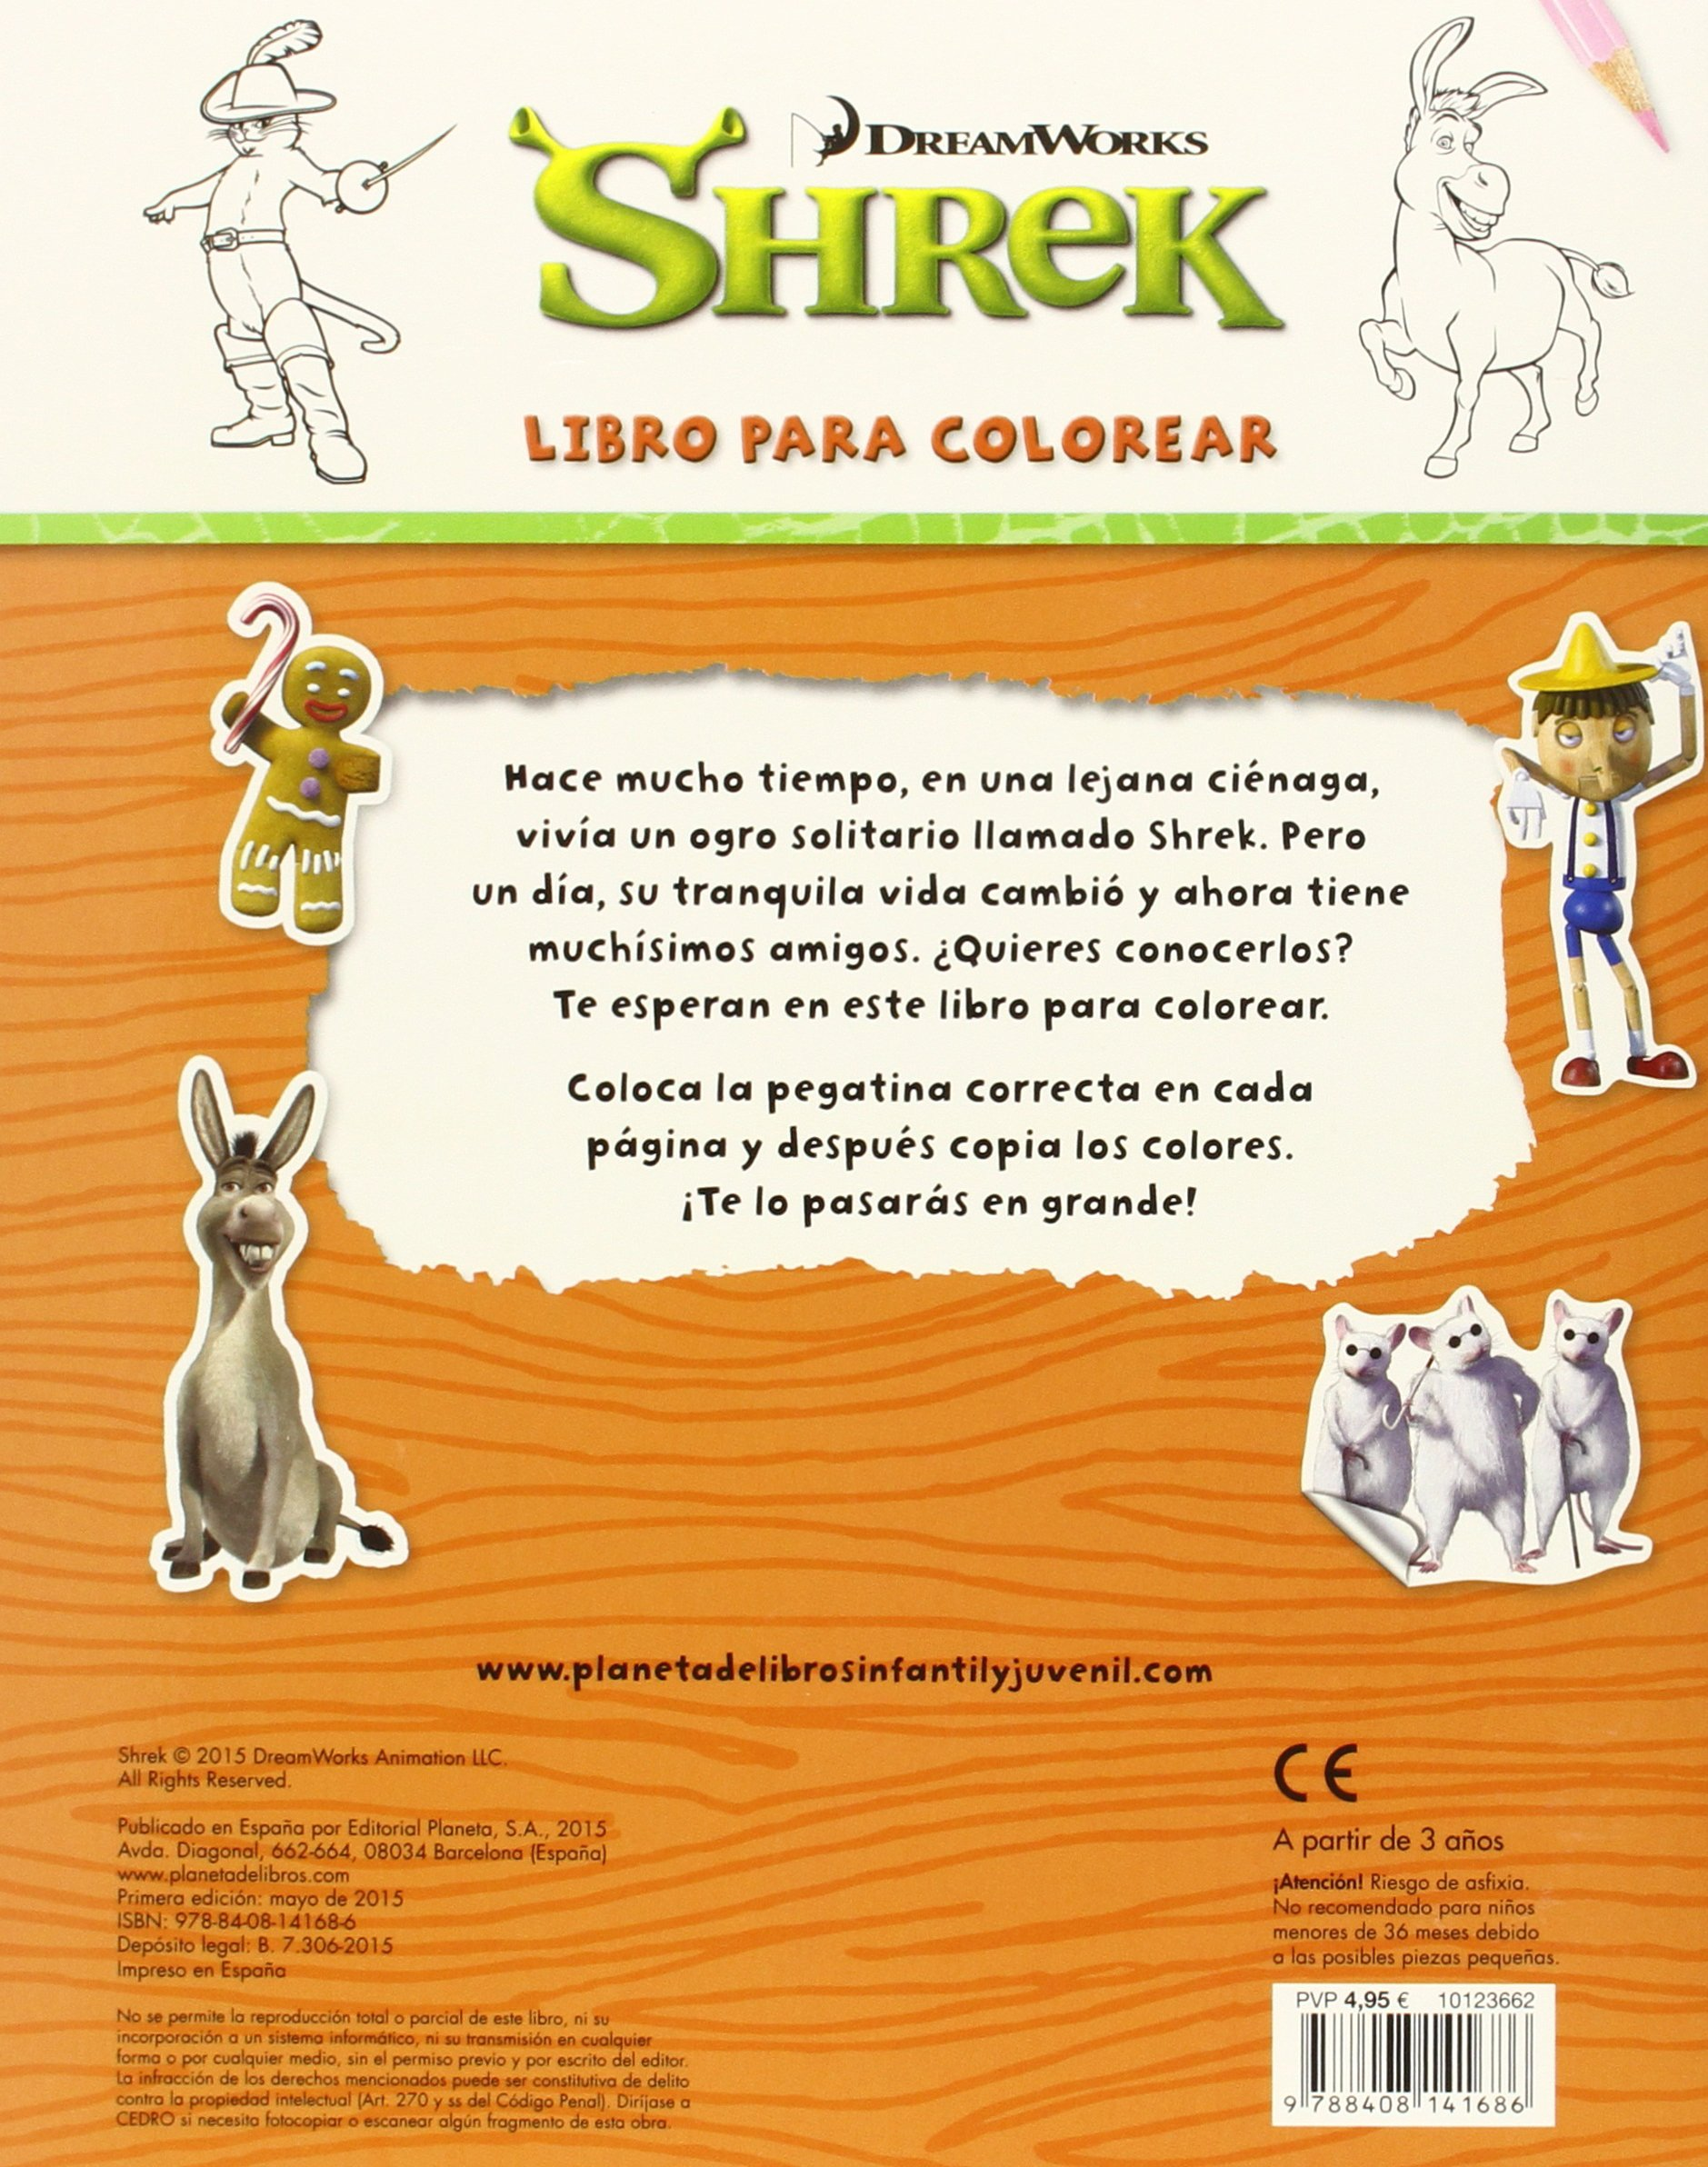 Libro para colorear: Dreamworks: 9788408141686: Amazon.com: Books